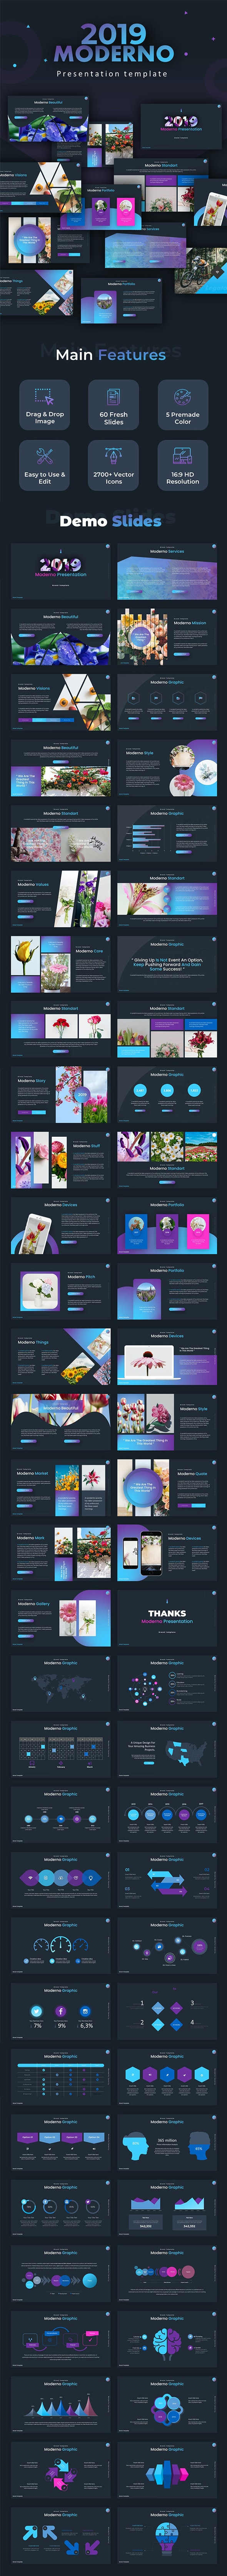 Moderno Creative Powerpoint - Business PowerPoint Templates